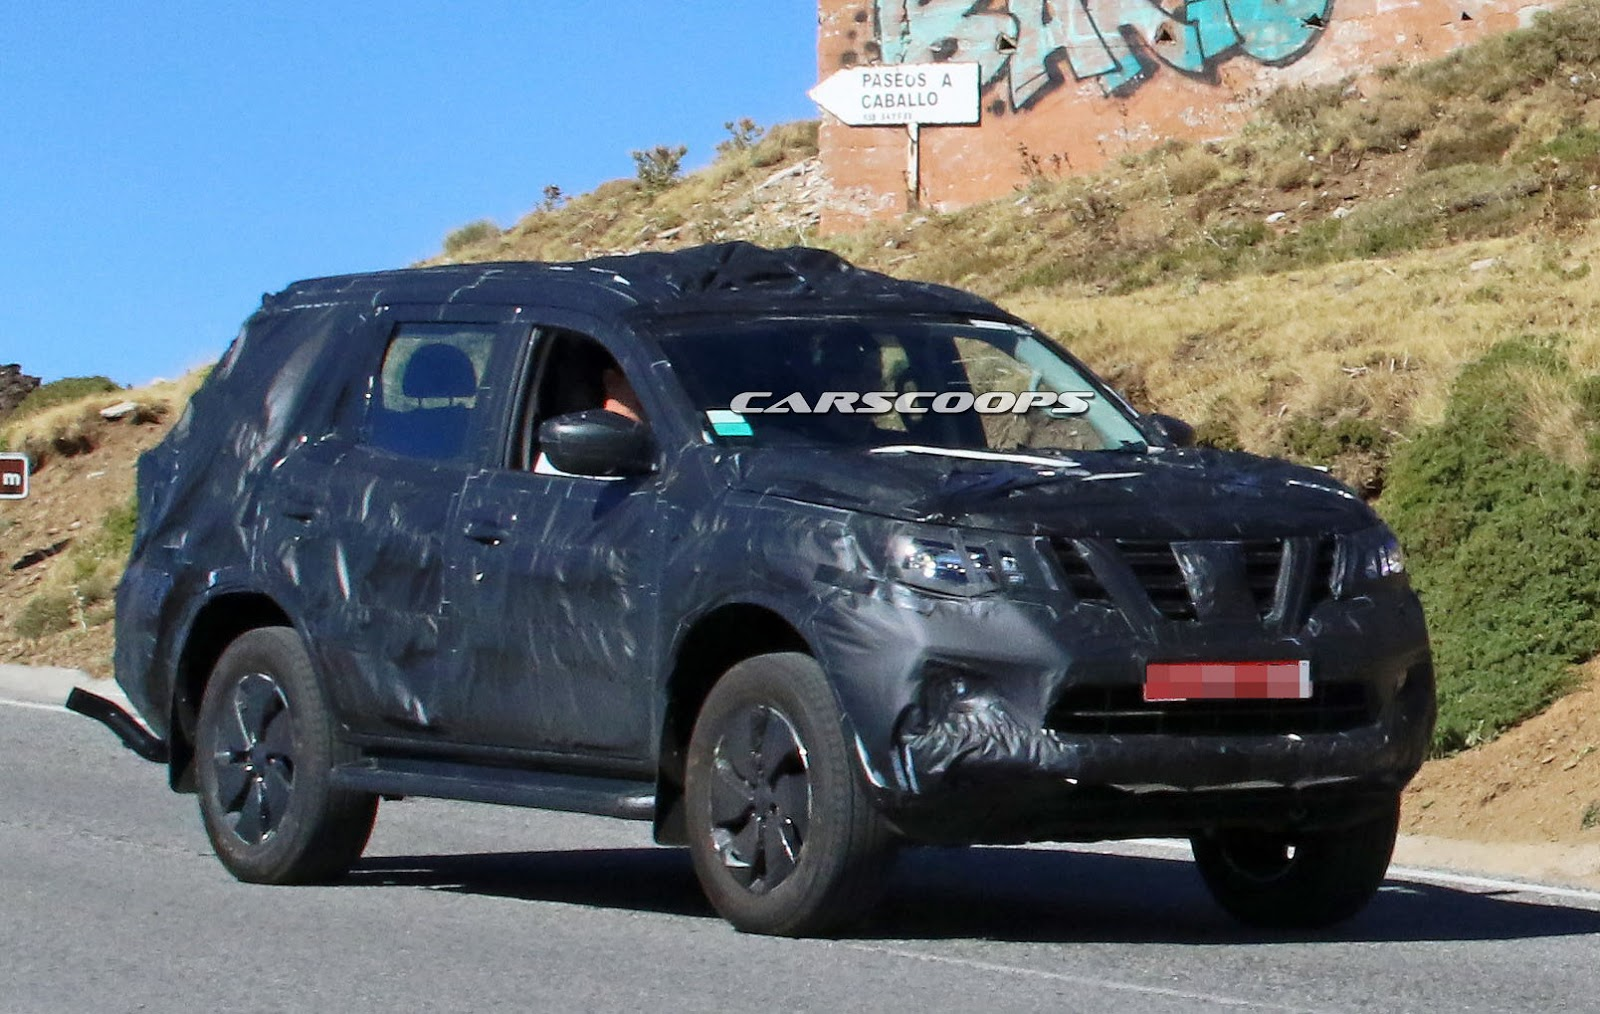 New Nissan Navara Based Suv Spied Could This Be The Next Non Us